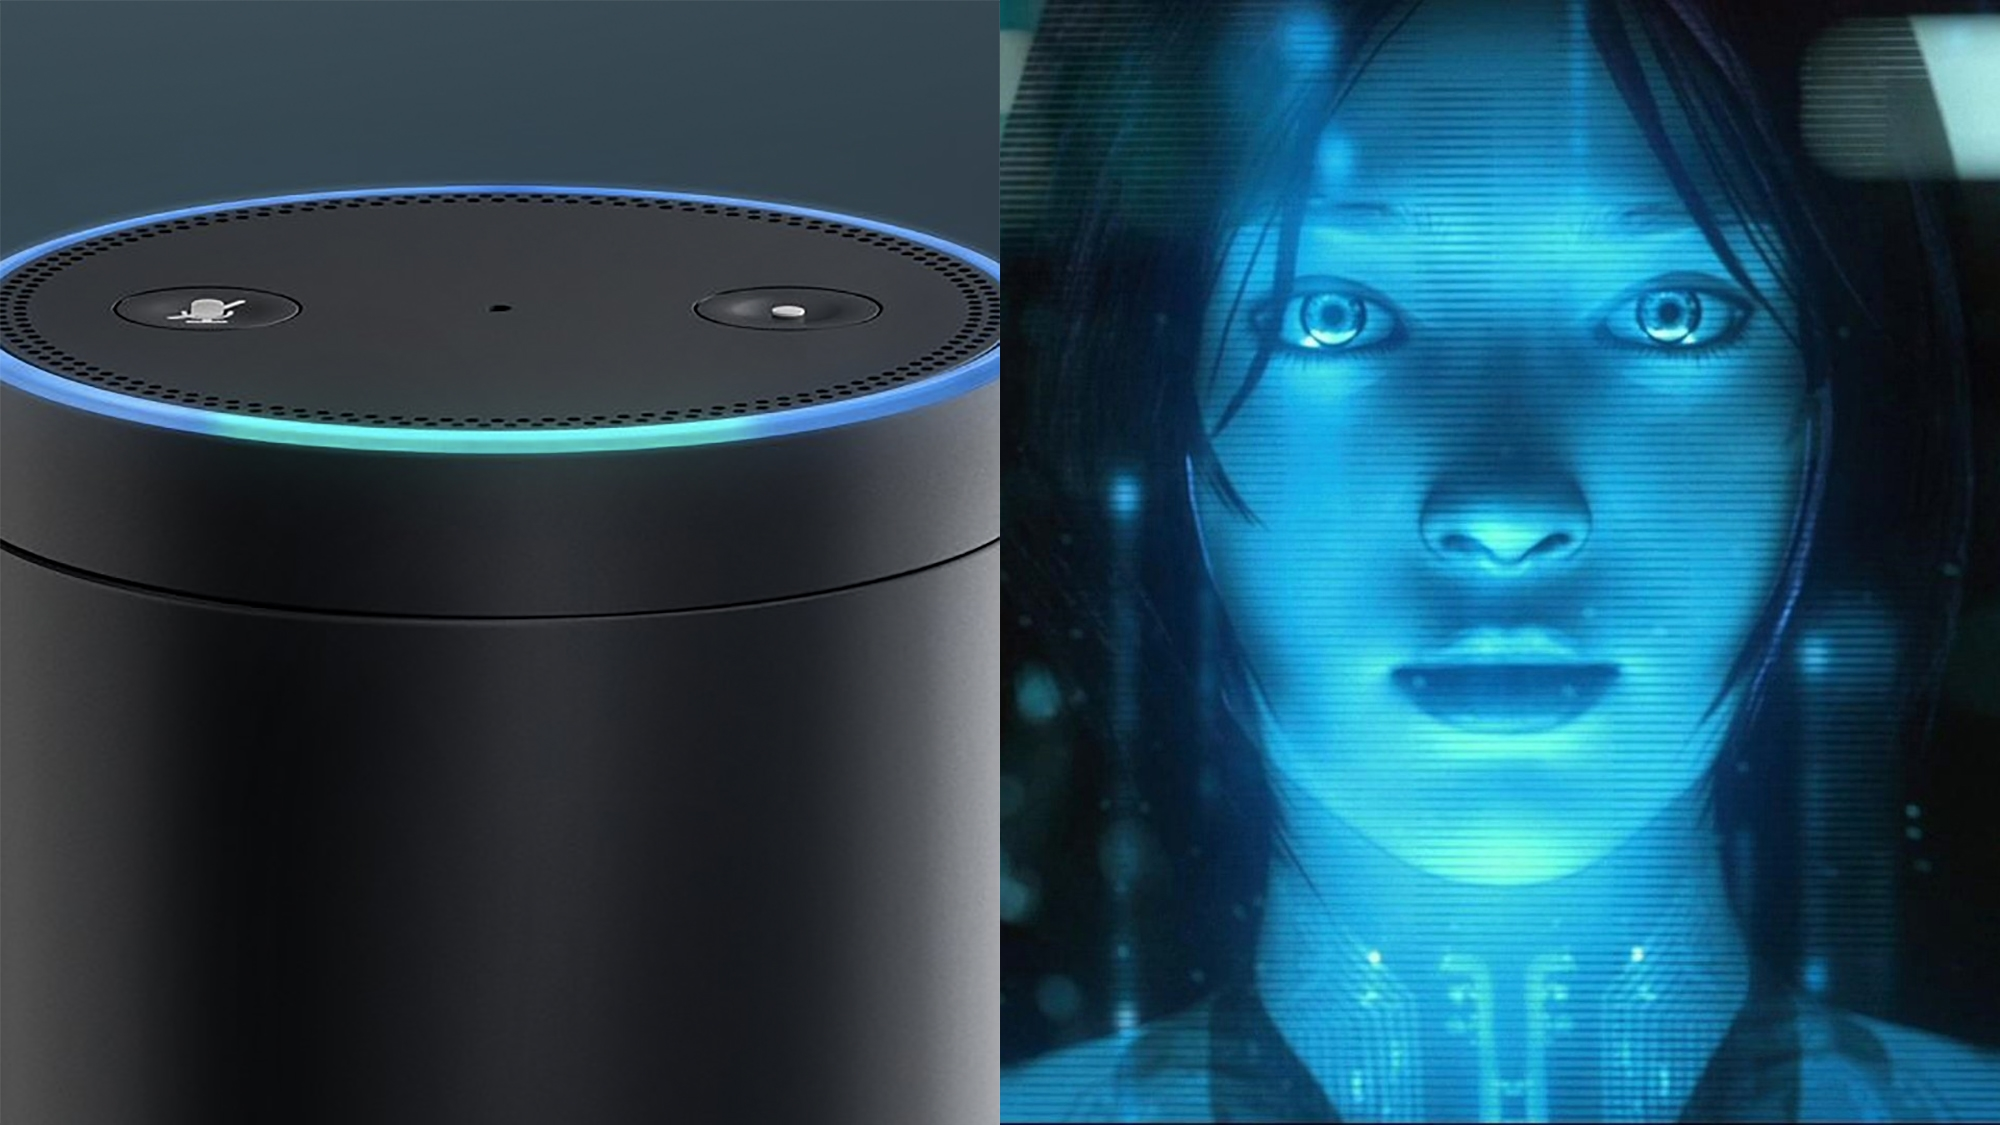 Amazon alexa vs cortana